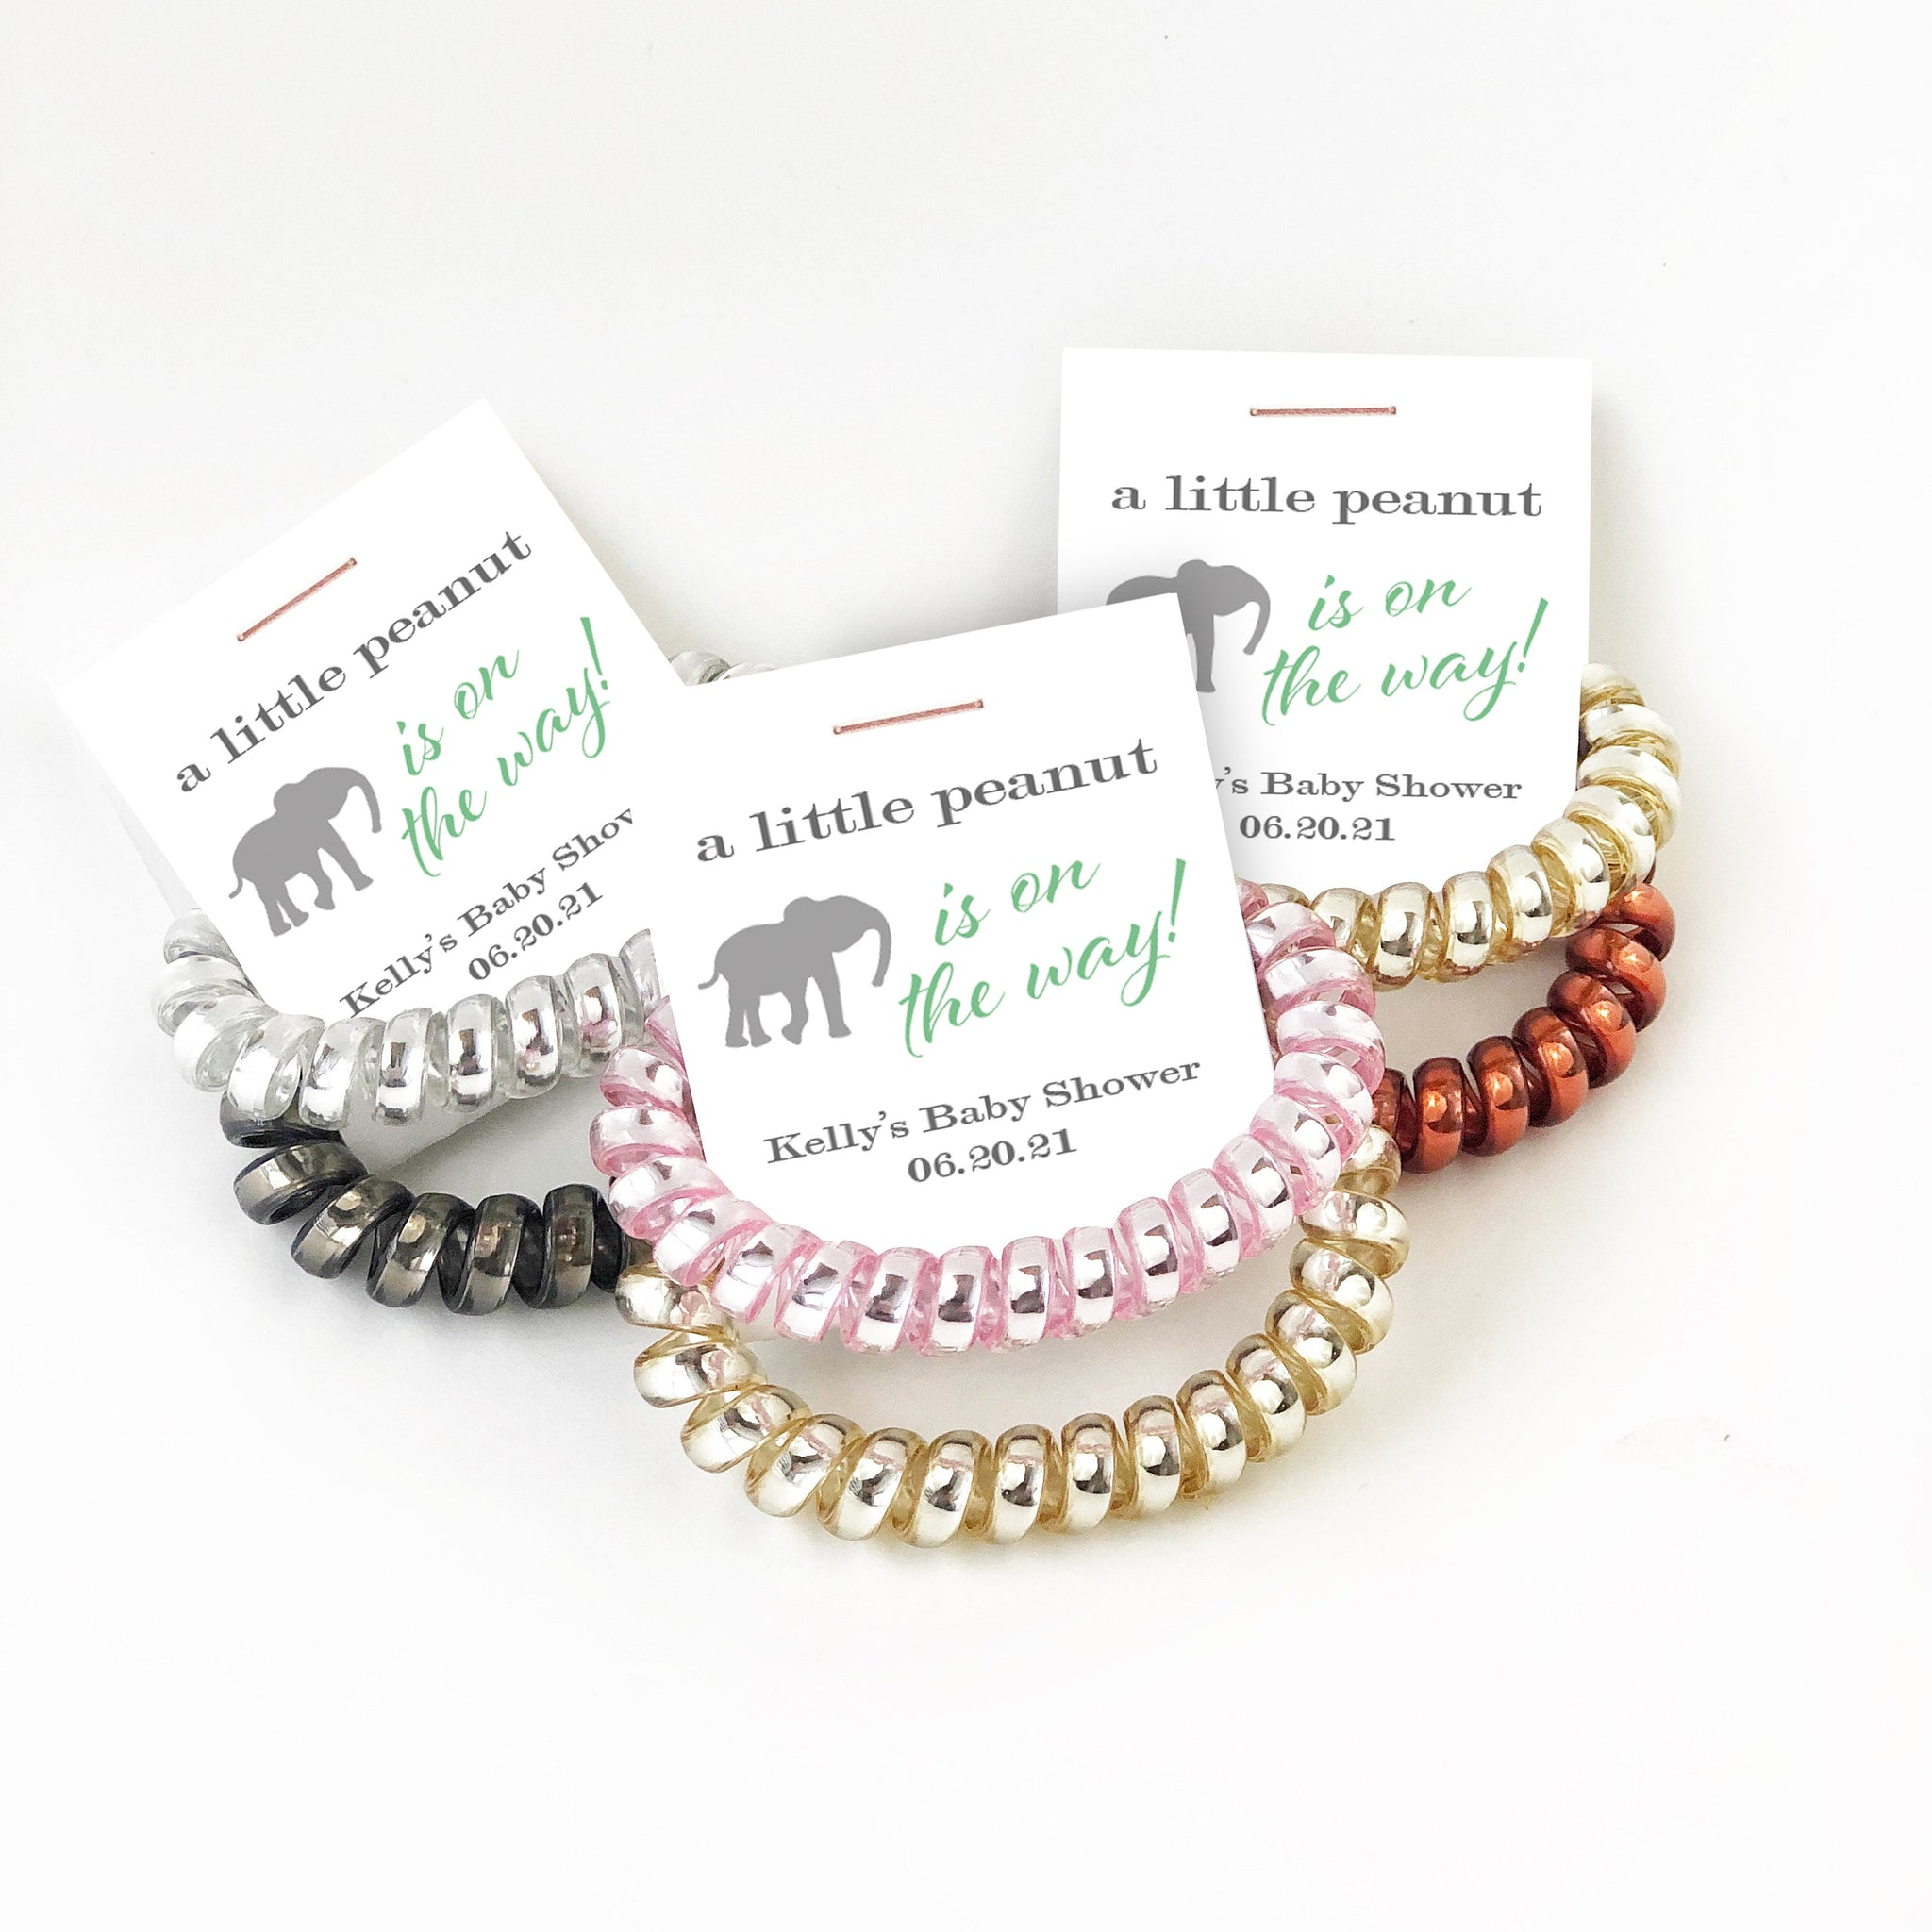 Elephant Baby Shower Favors Gender Neutral, Spiral Hair Ties, A Little Peanut is On The Way - @PlumPolkaDot